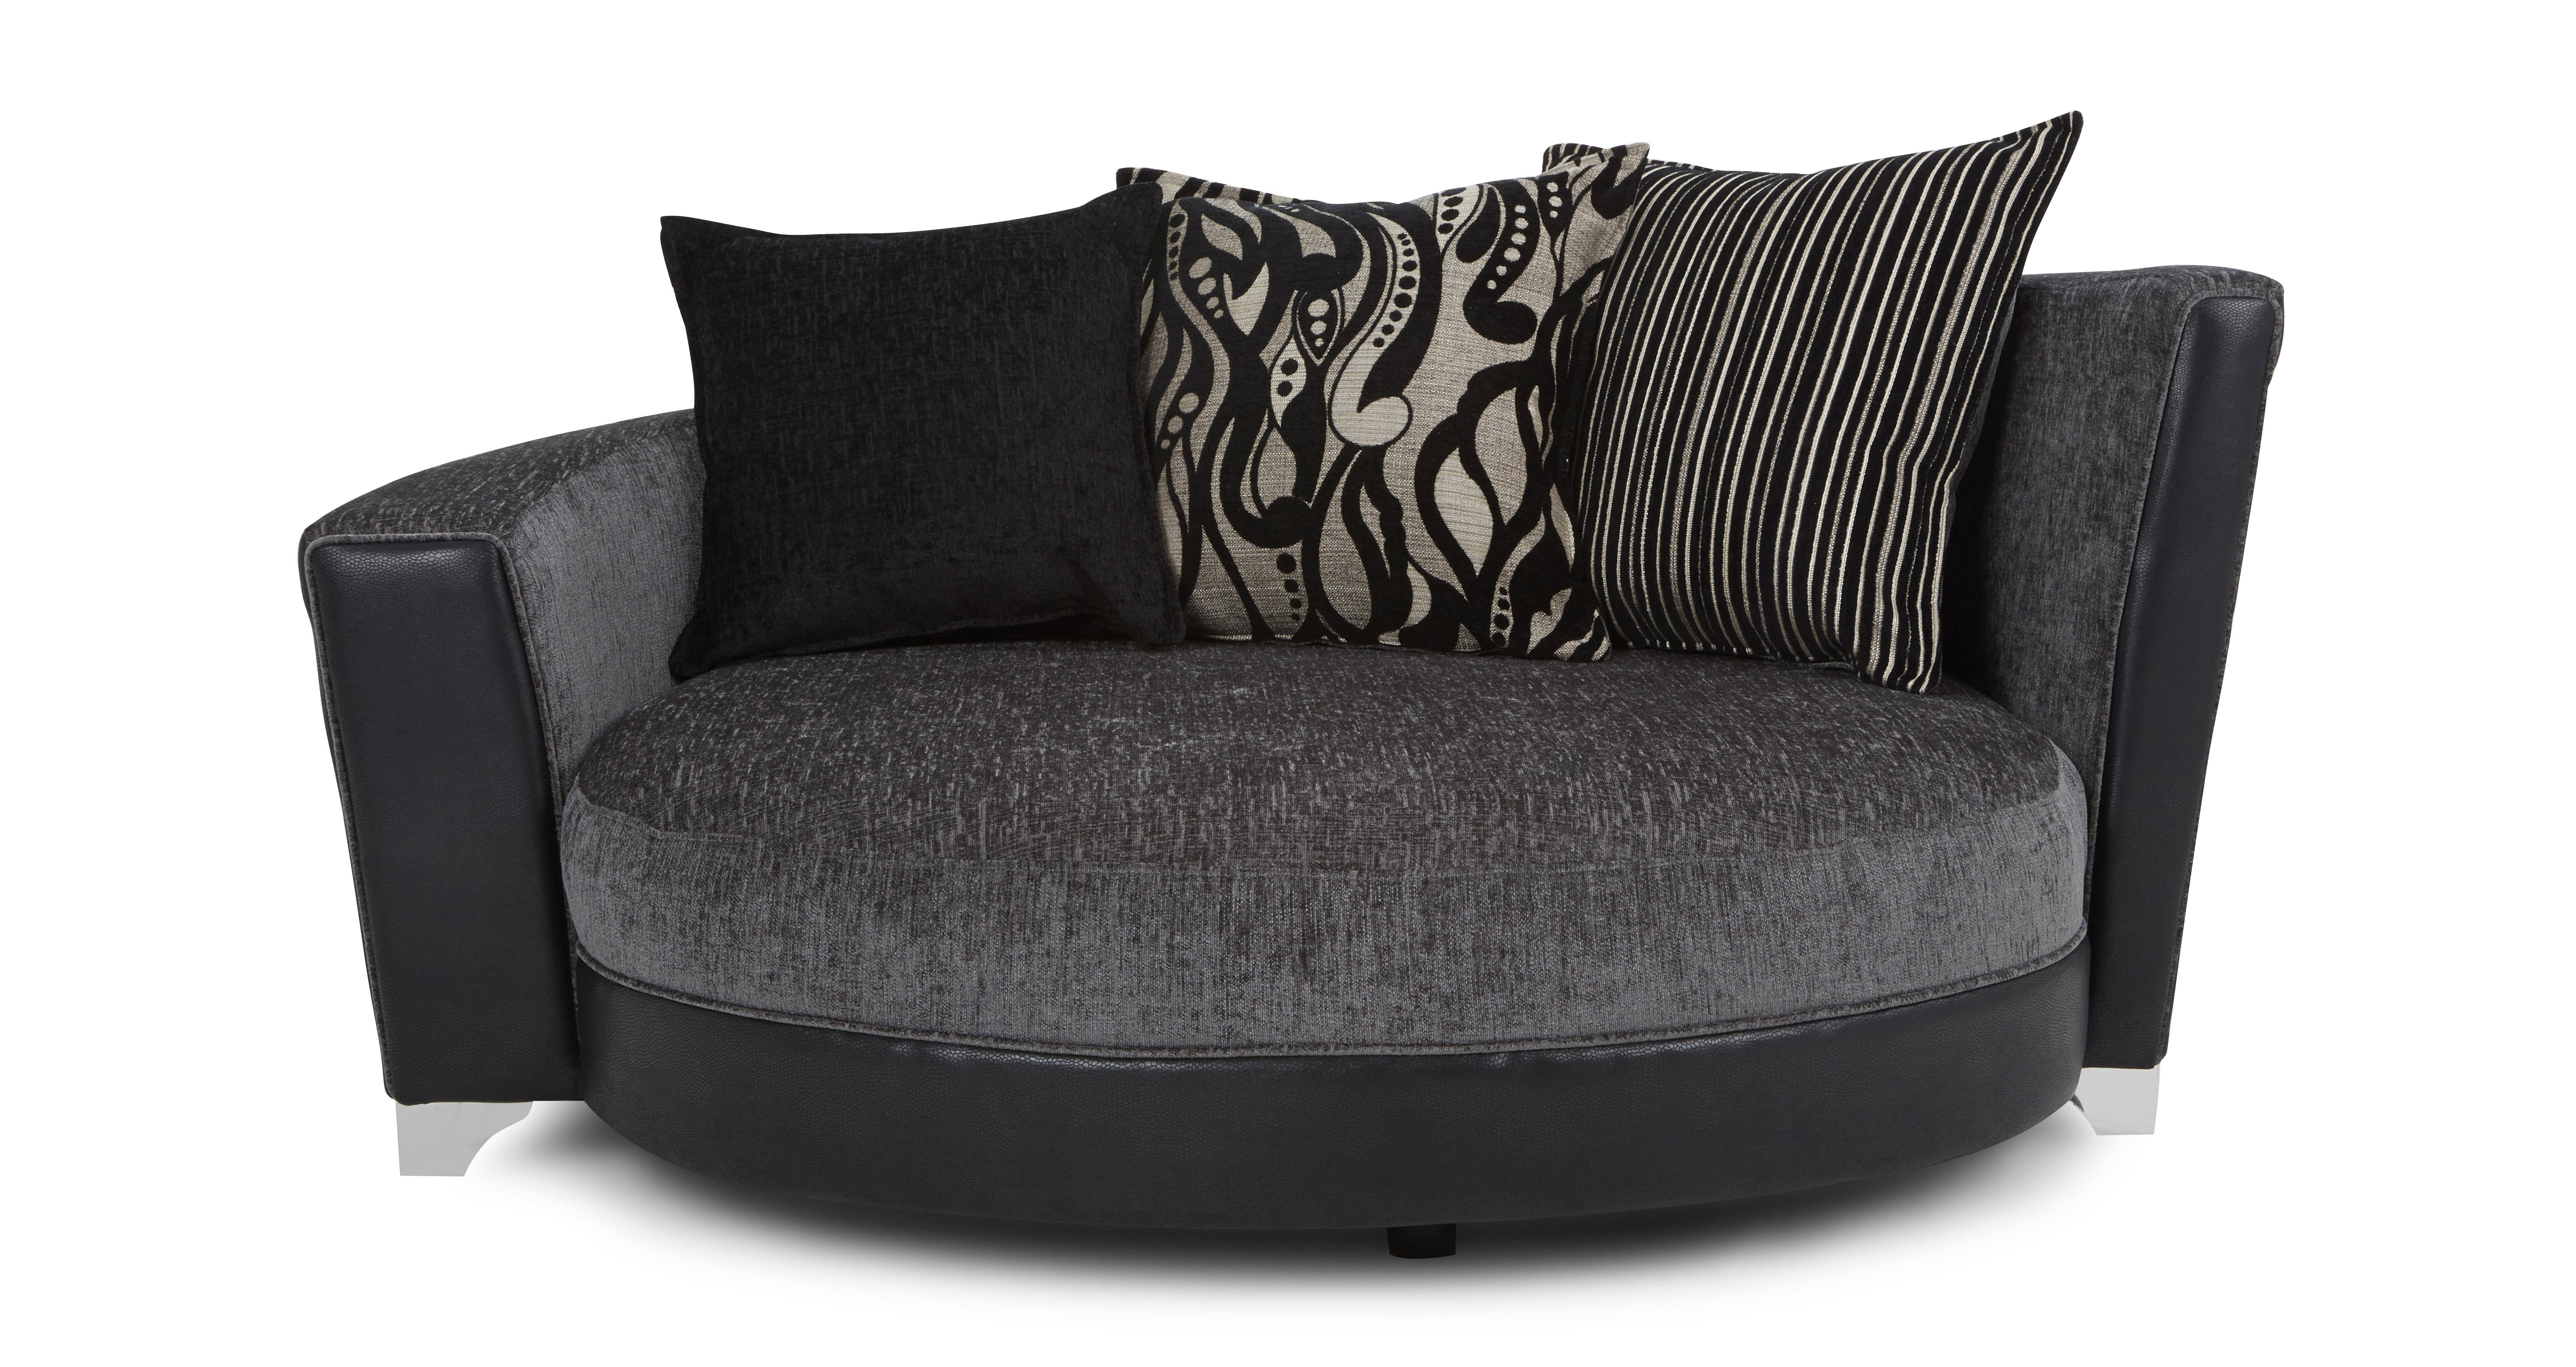 Sofas Center : Formidable Swivel Sofa Chair Picture Concept regarding Chair Sofas (Image 19 of 30)